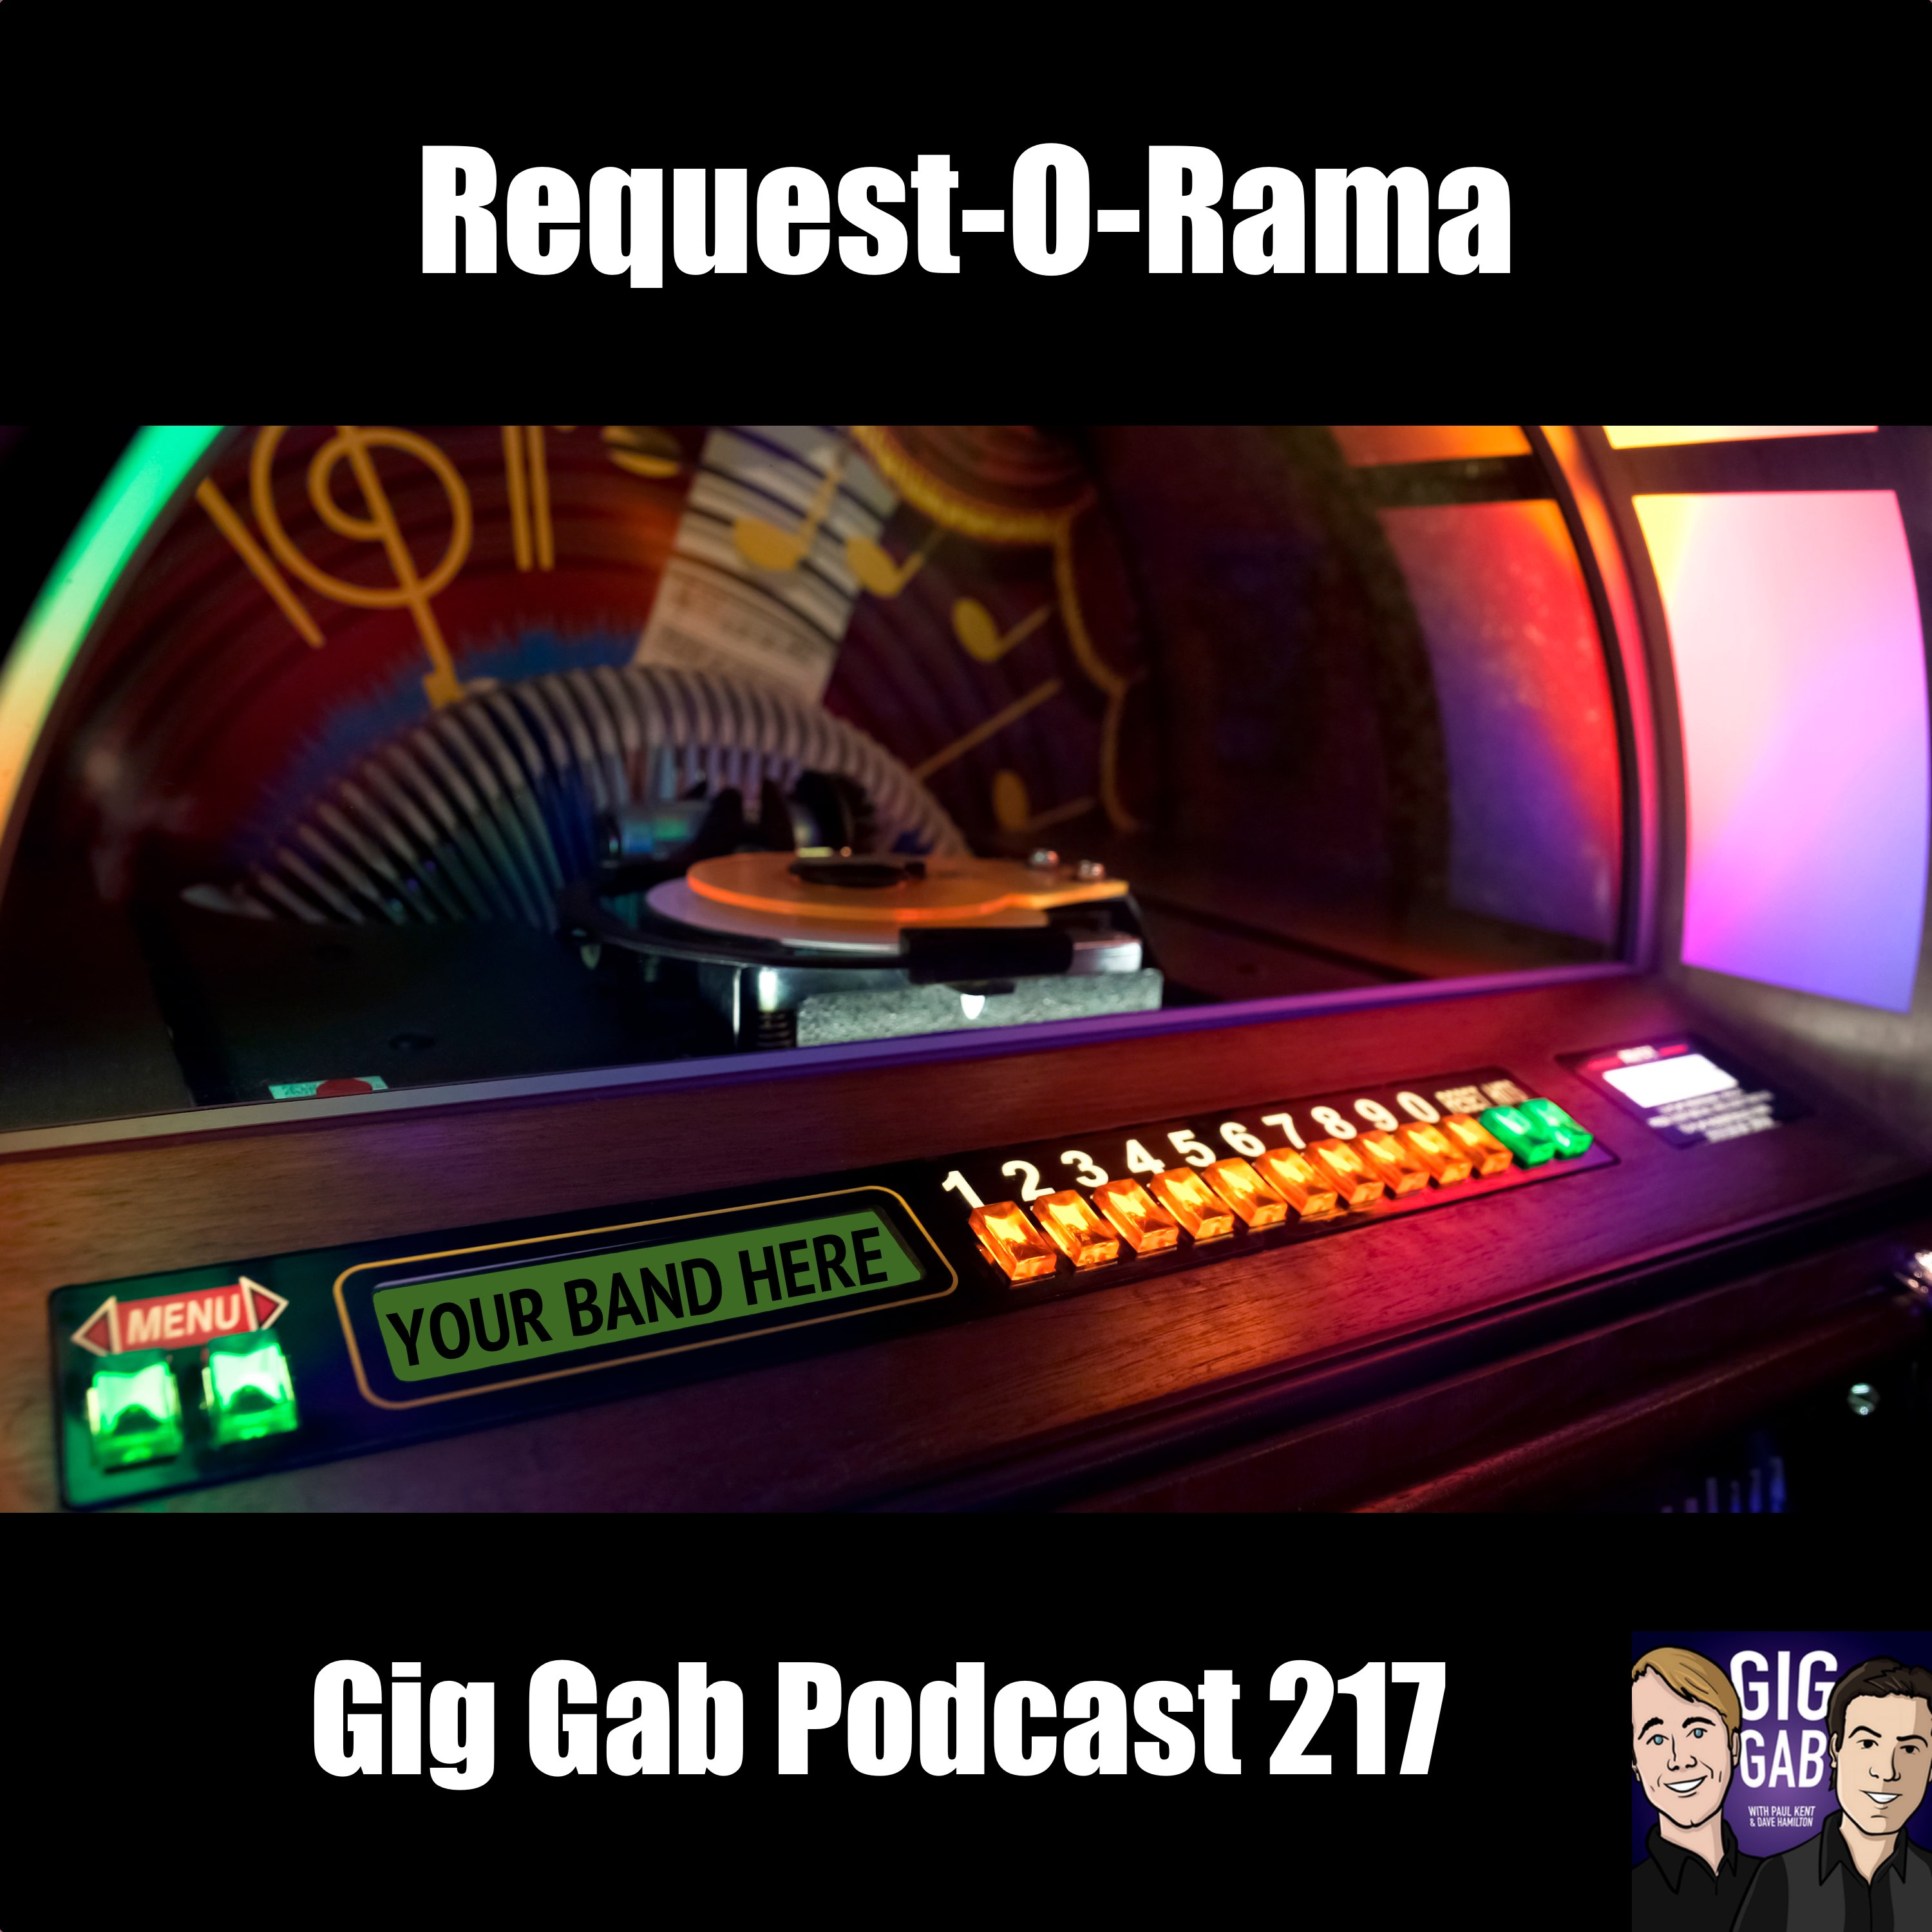 Request-O-Rama – Gig Gab Podcast 217